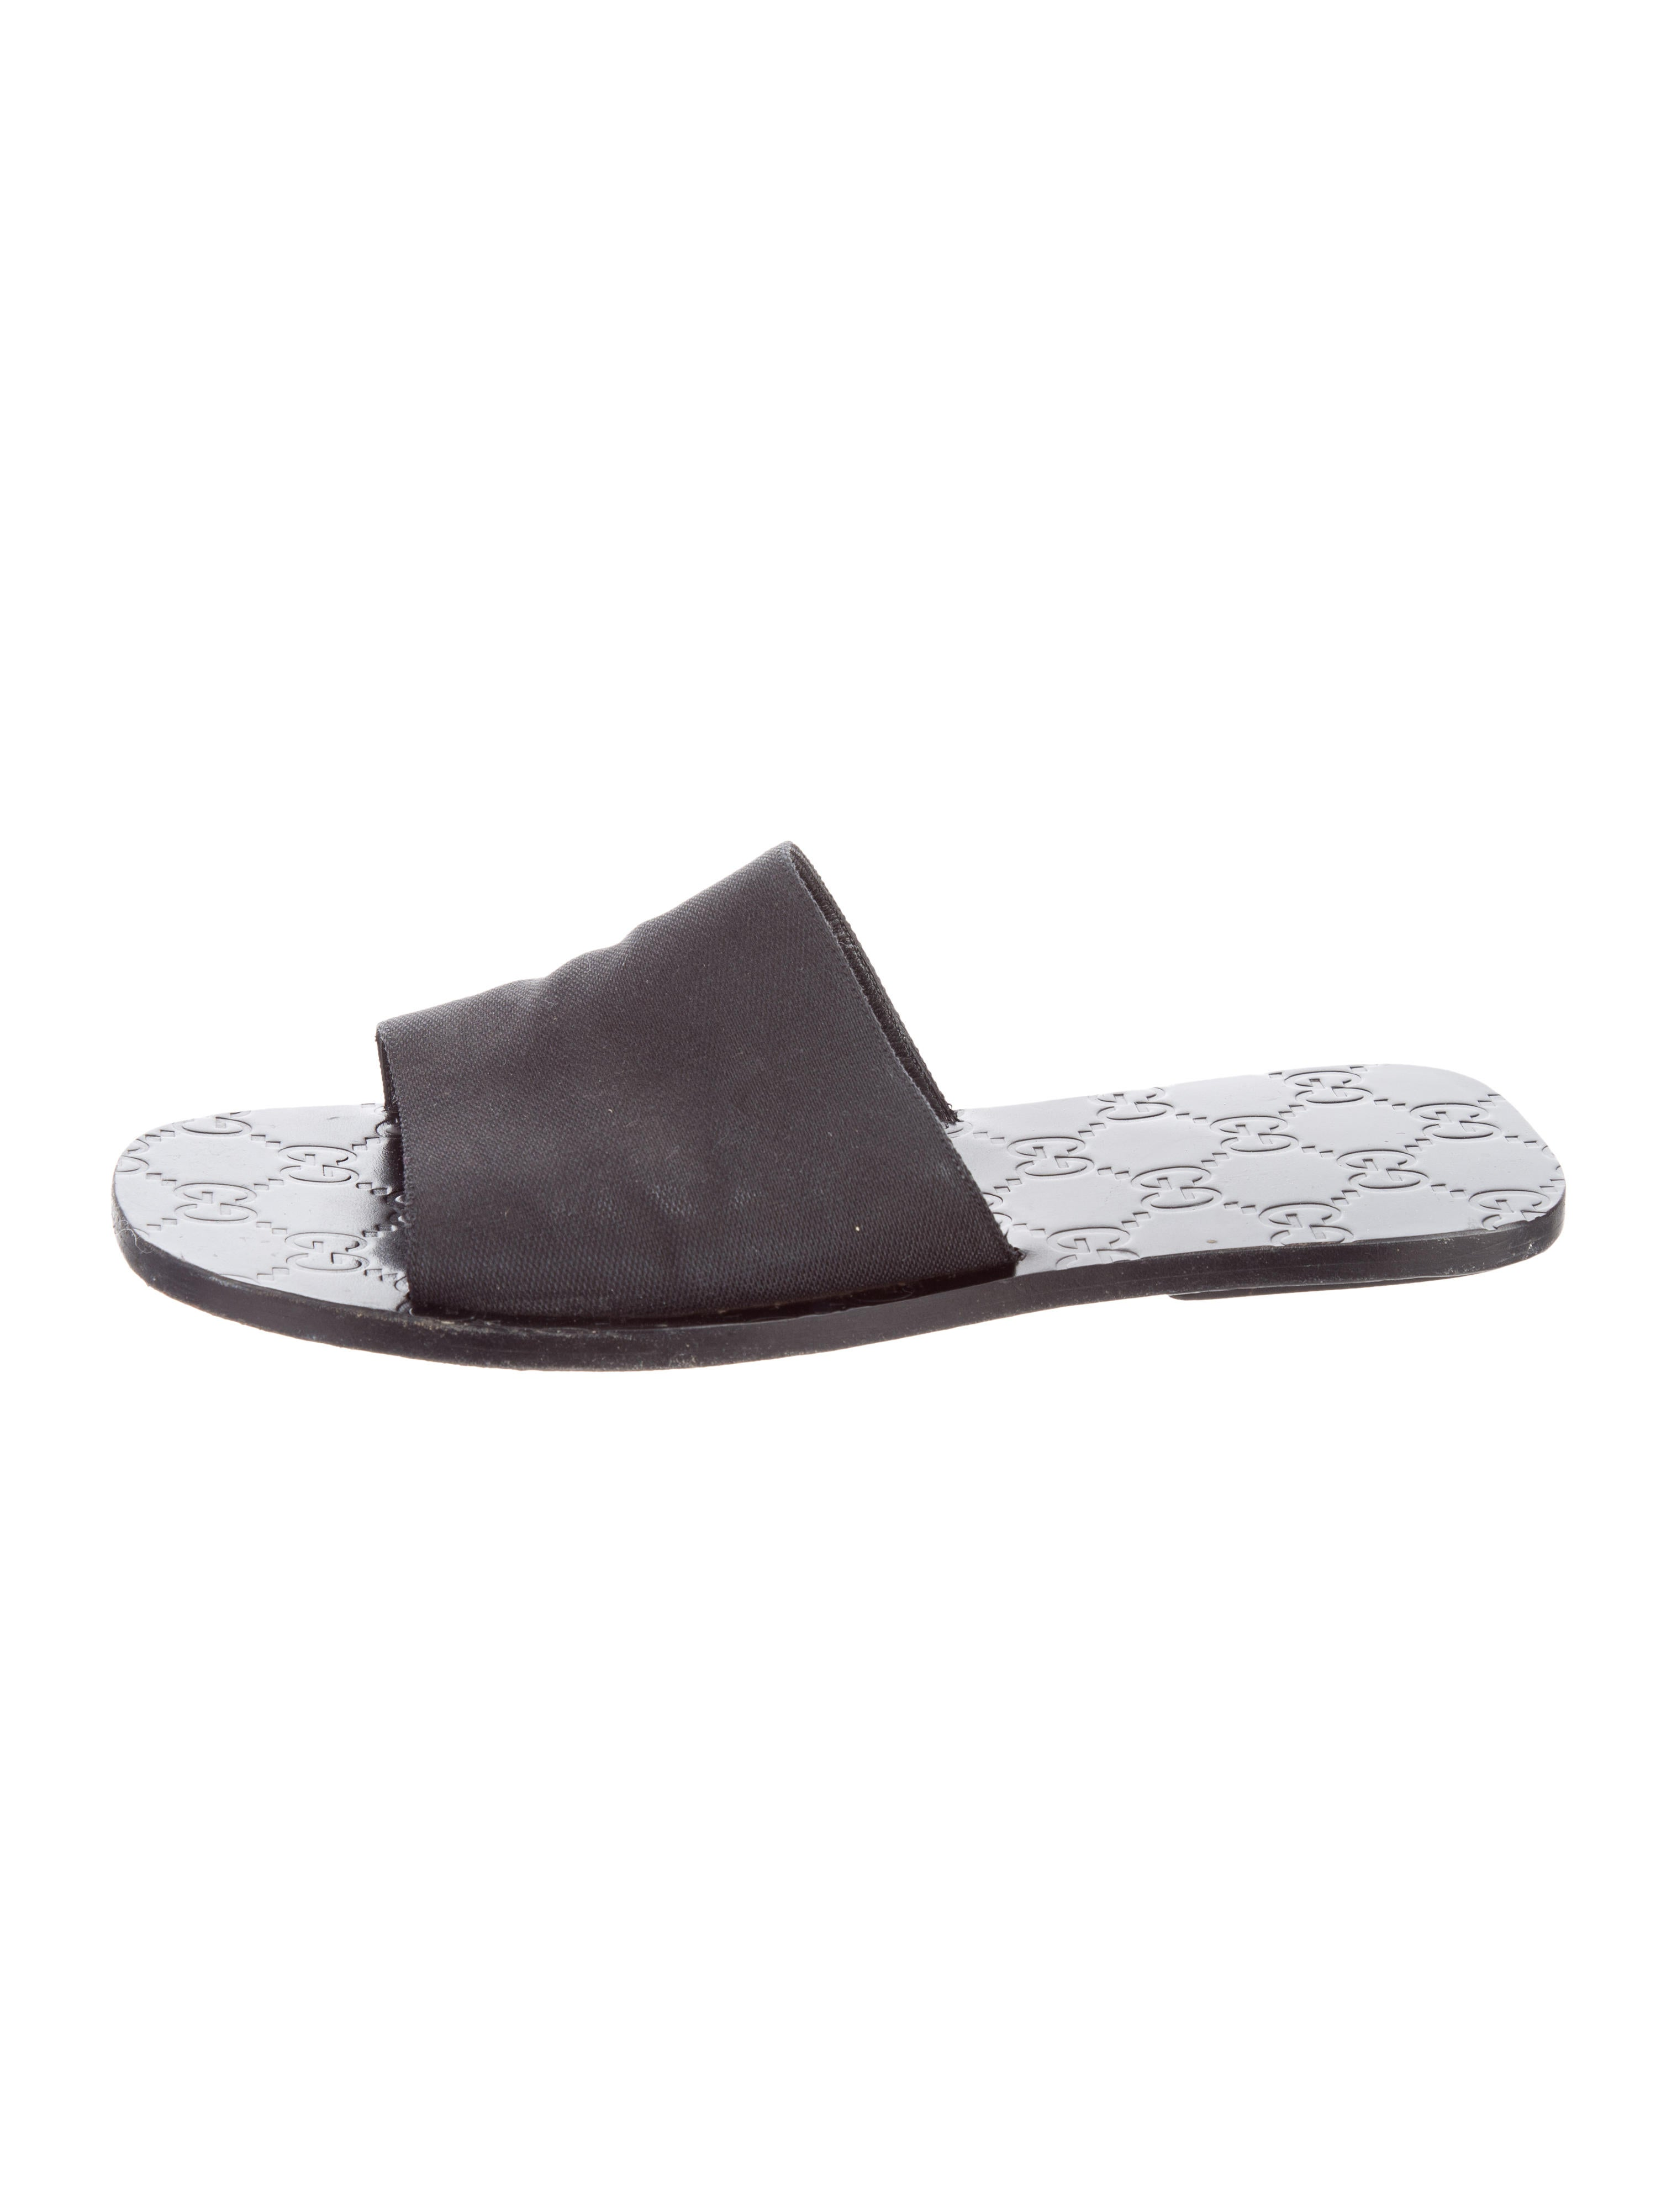 The shoe is constructed with a soft, flexible two-tone canvas upper with frayed edging details, dual goring panels, and ventilation holes on the side to keep feet cool and dry.